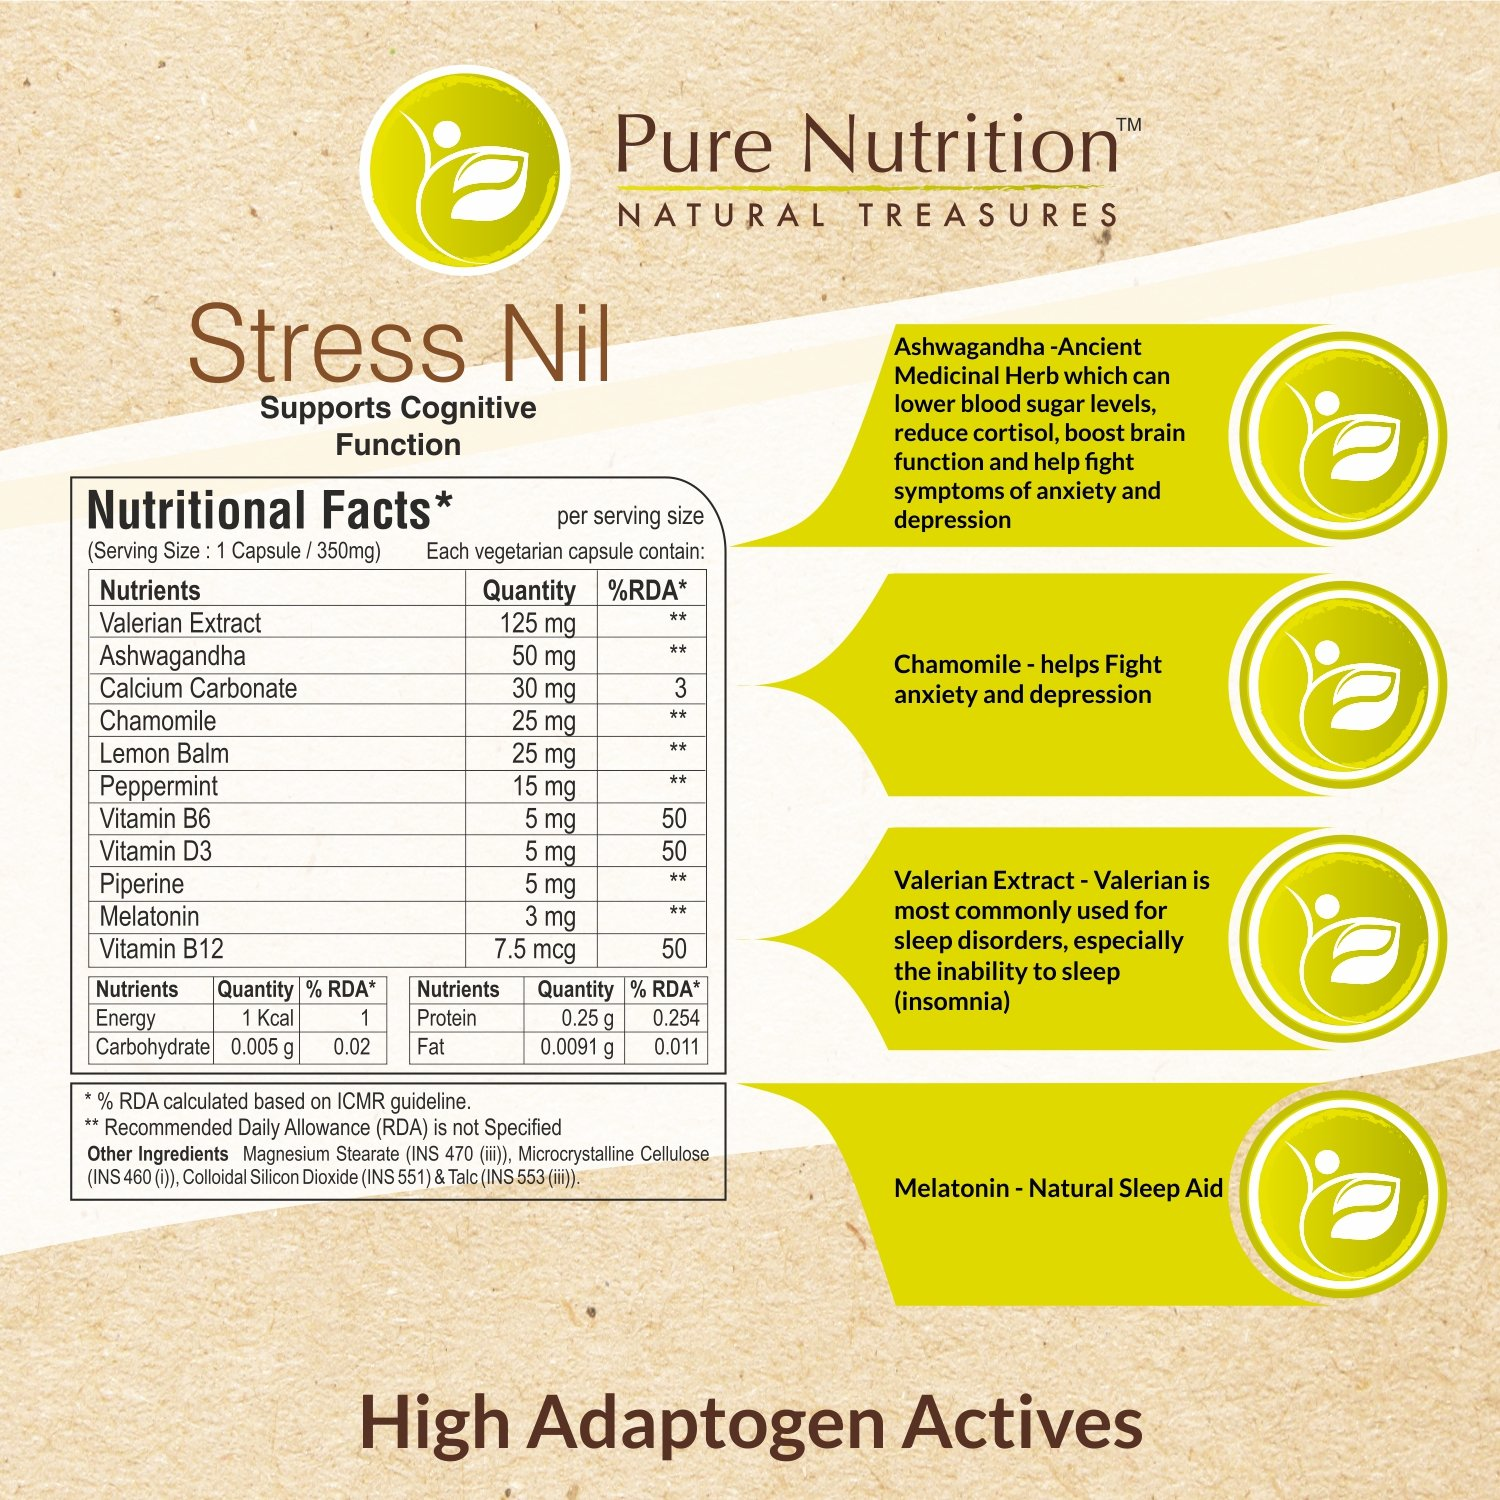 Amazon.com: Pure Nutrition Stress Nil (Higher Adptogen Activities) - 90 Capsules: Health & Personal Care